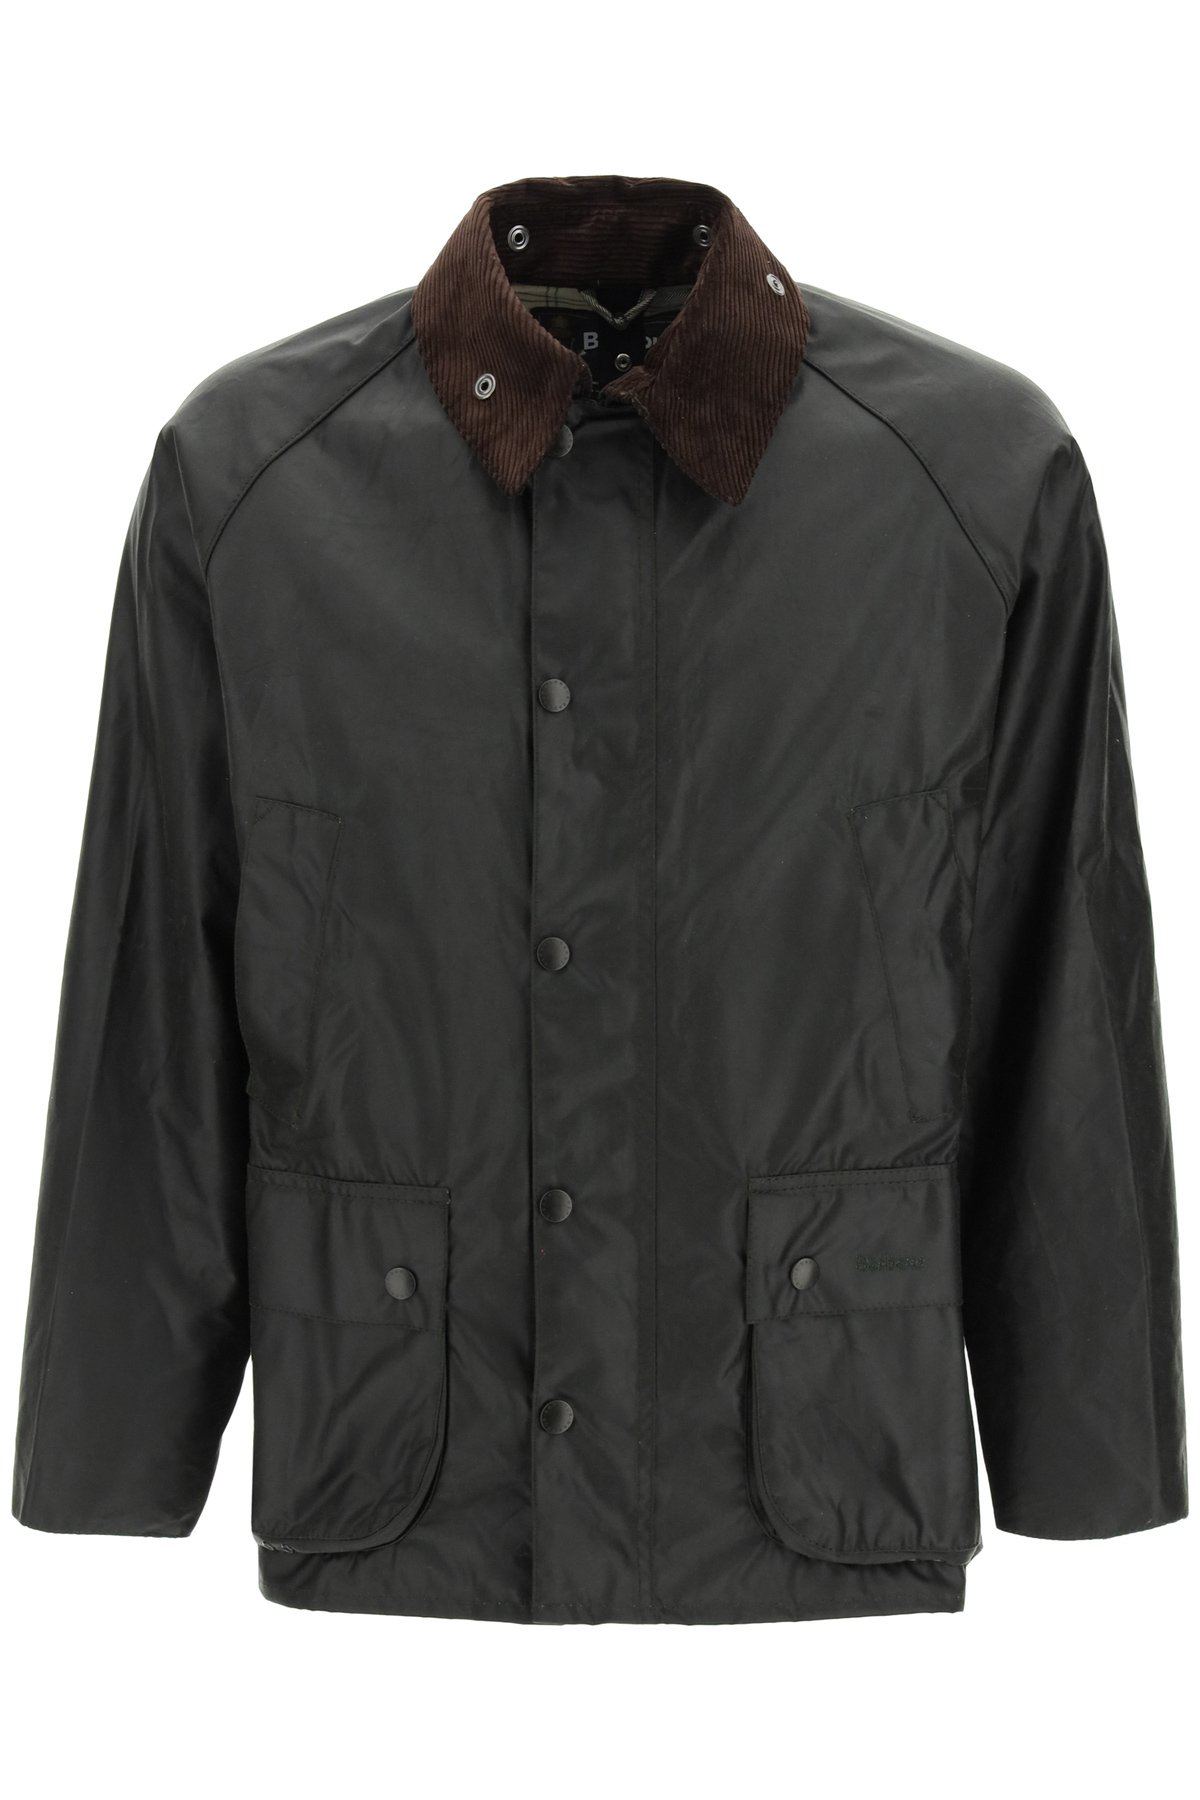 Barbour giacca wax bedale in cotone cerato